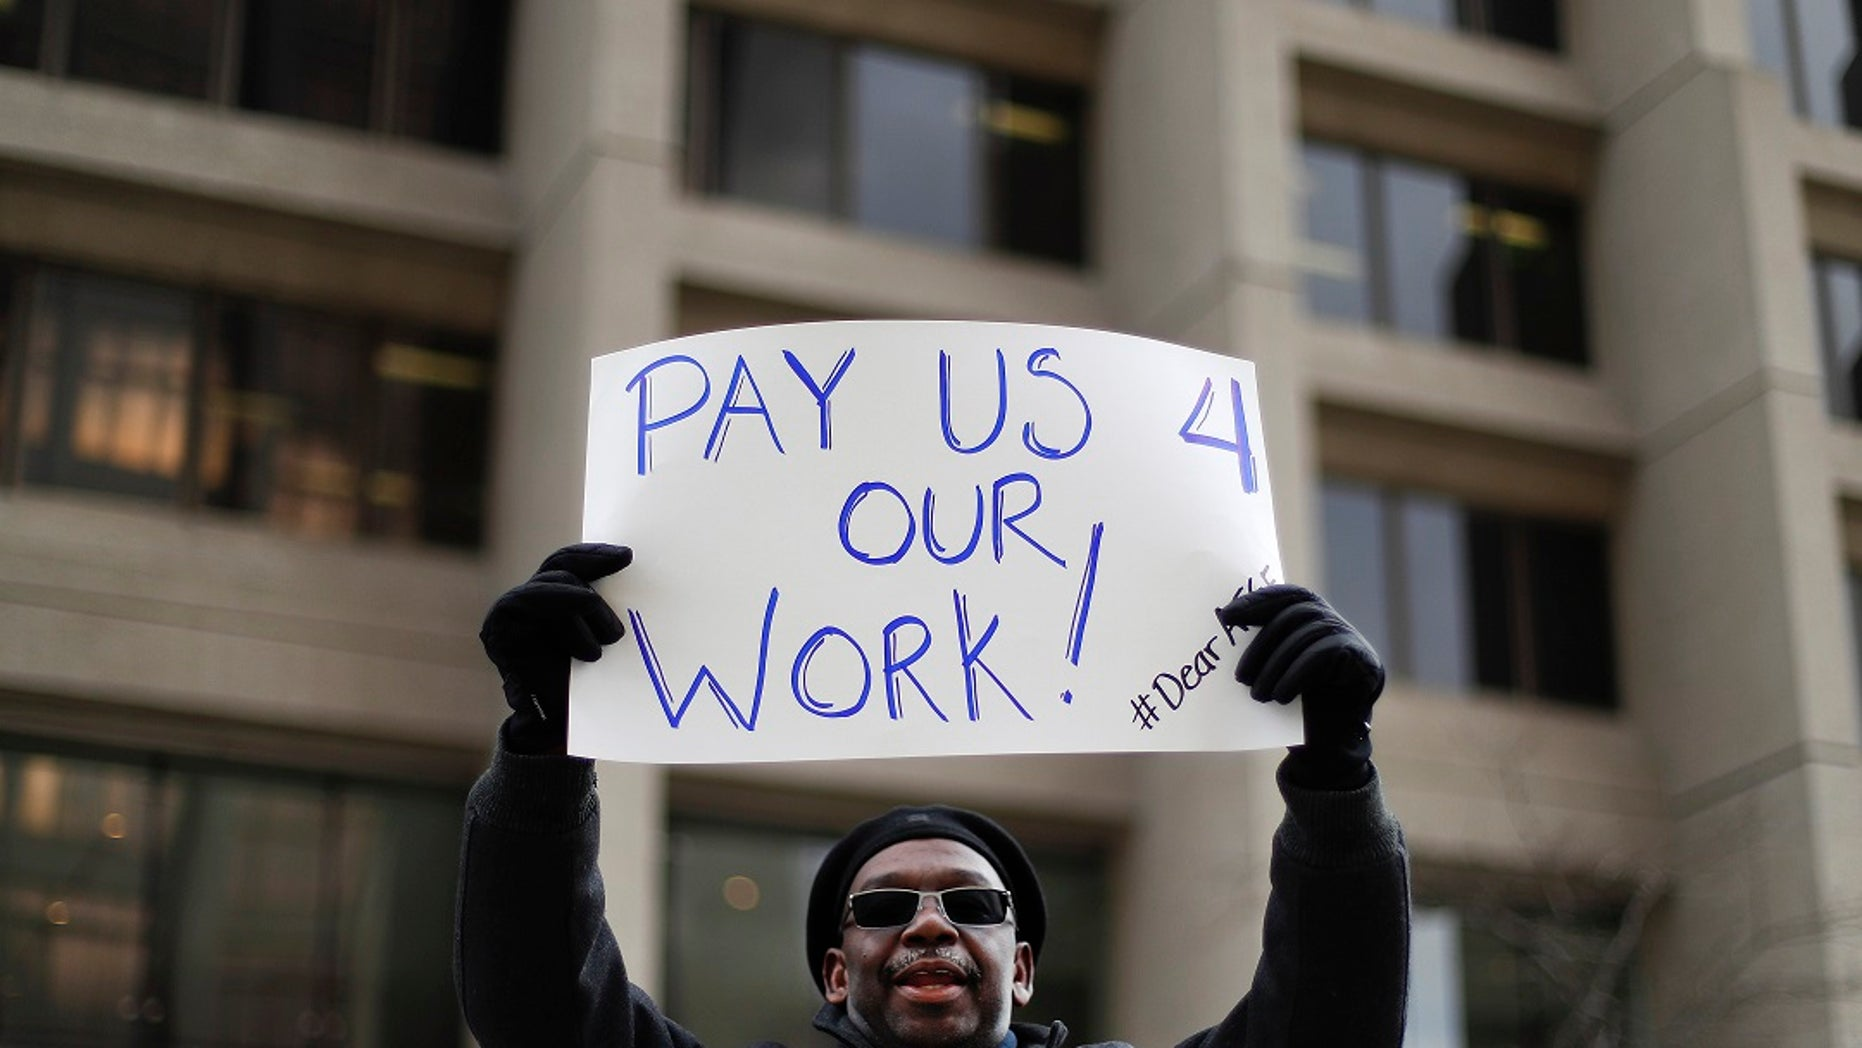 Christopher Belcher, a Department of Veterans Affairs employee, holds a sign during a rally to call for an end to the partial government shutdown, in Detroit, Thursday, Jan. 10, 2019. (Associated Press)